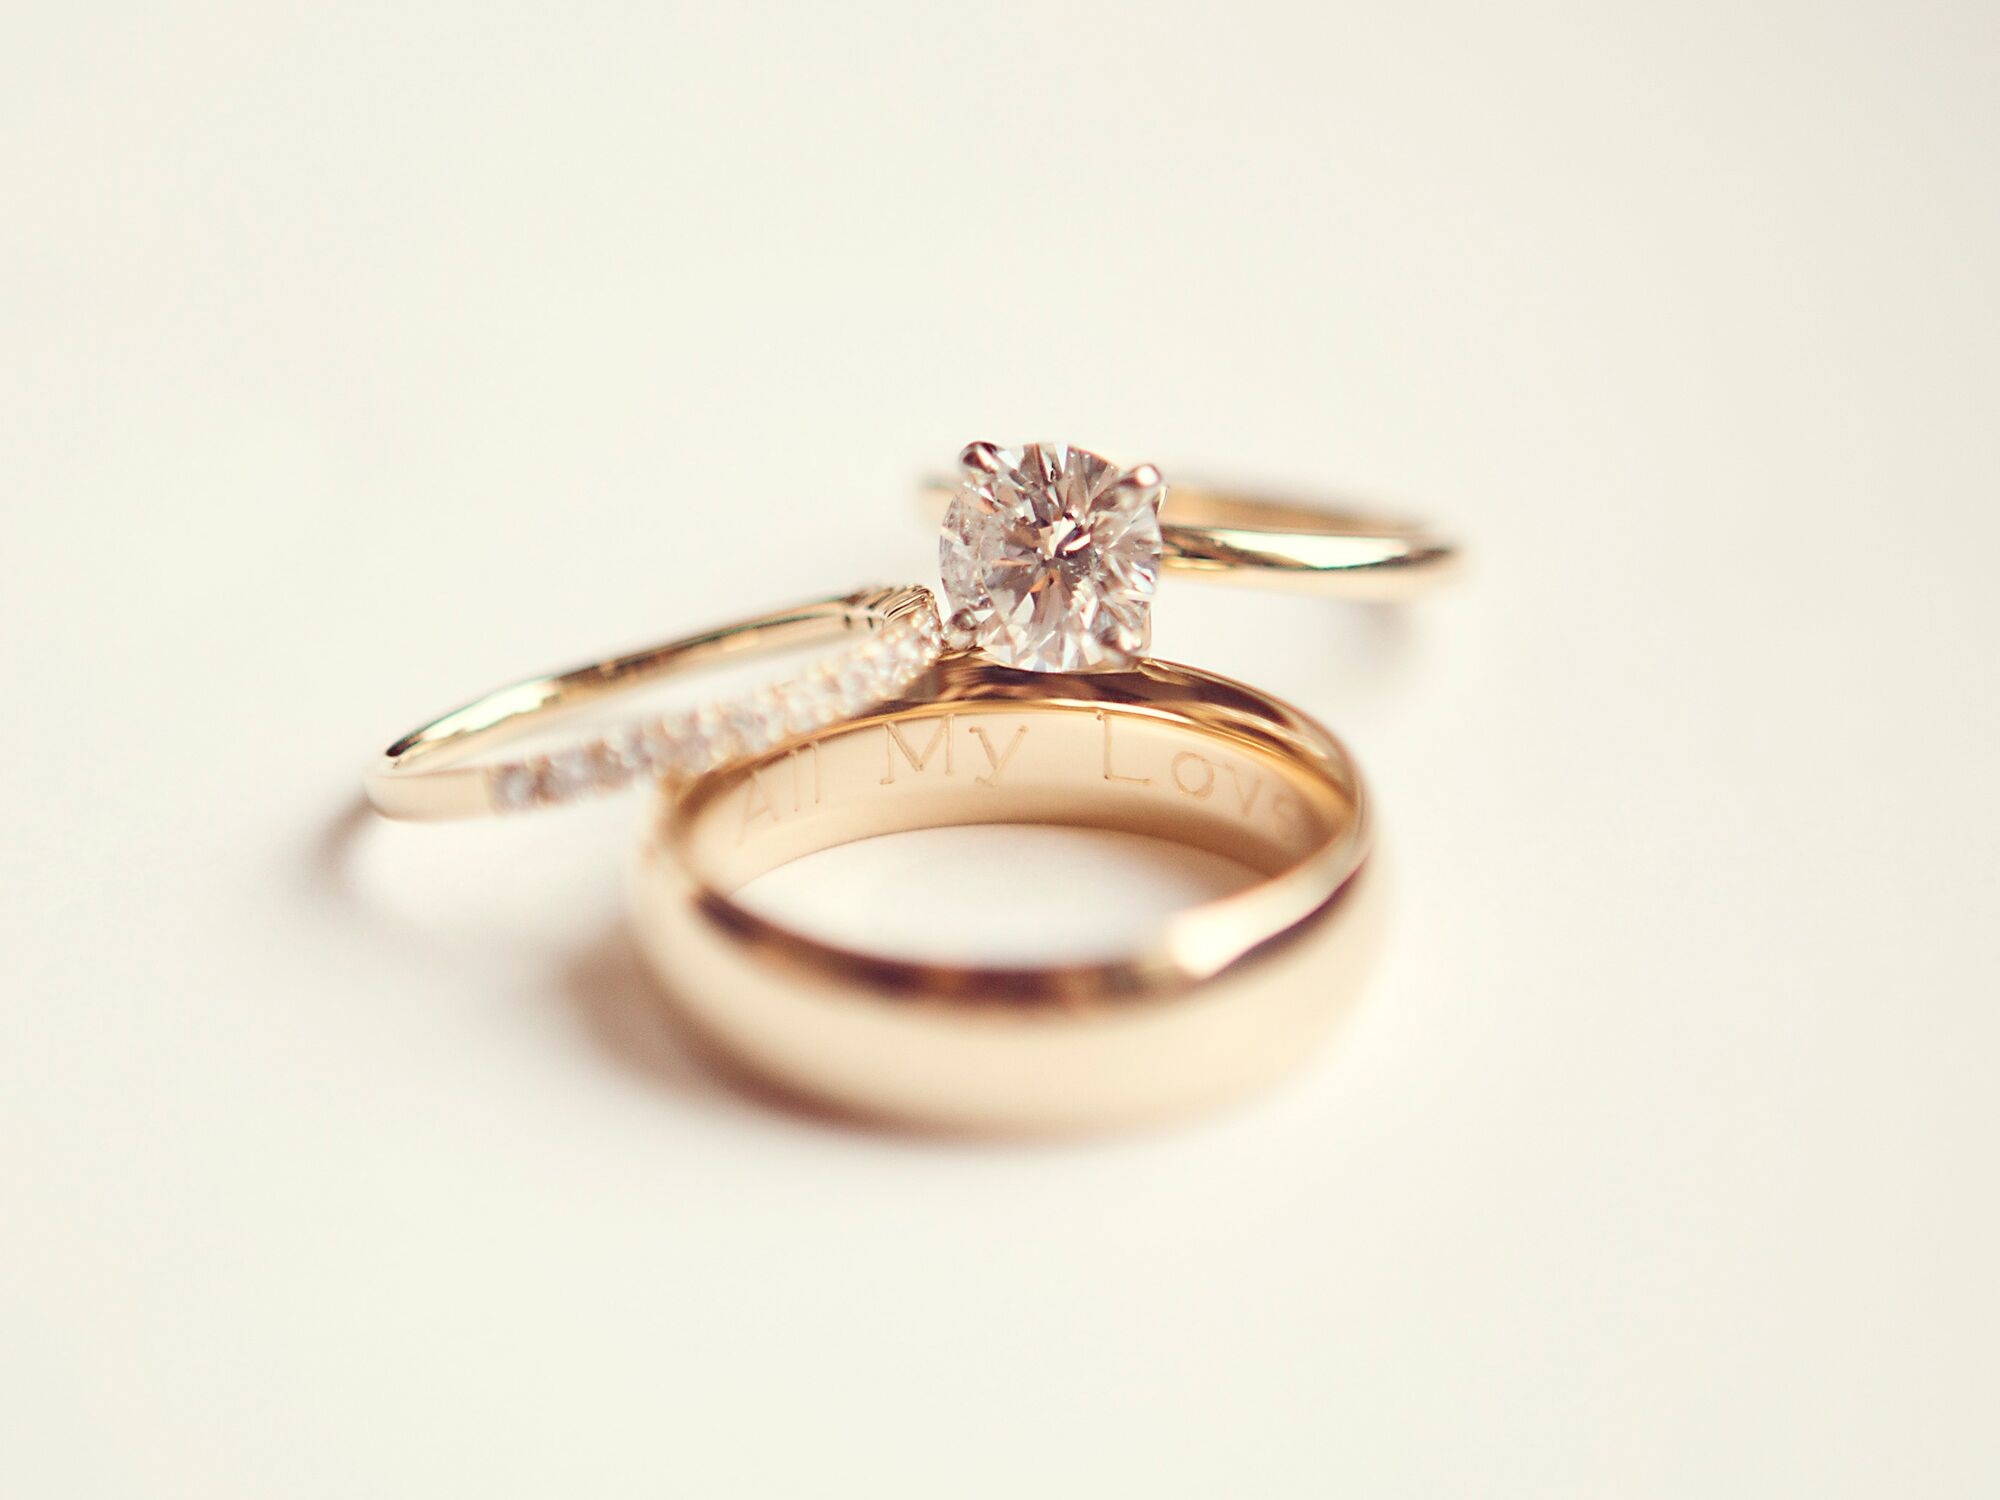 How To Get Your Wedding Rings Engraved 101 The Knot